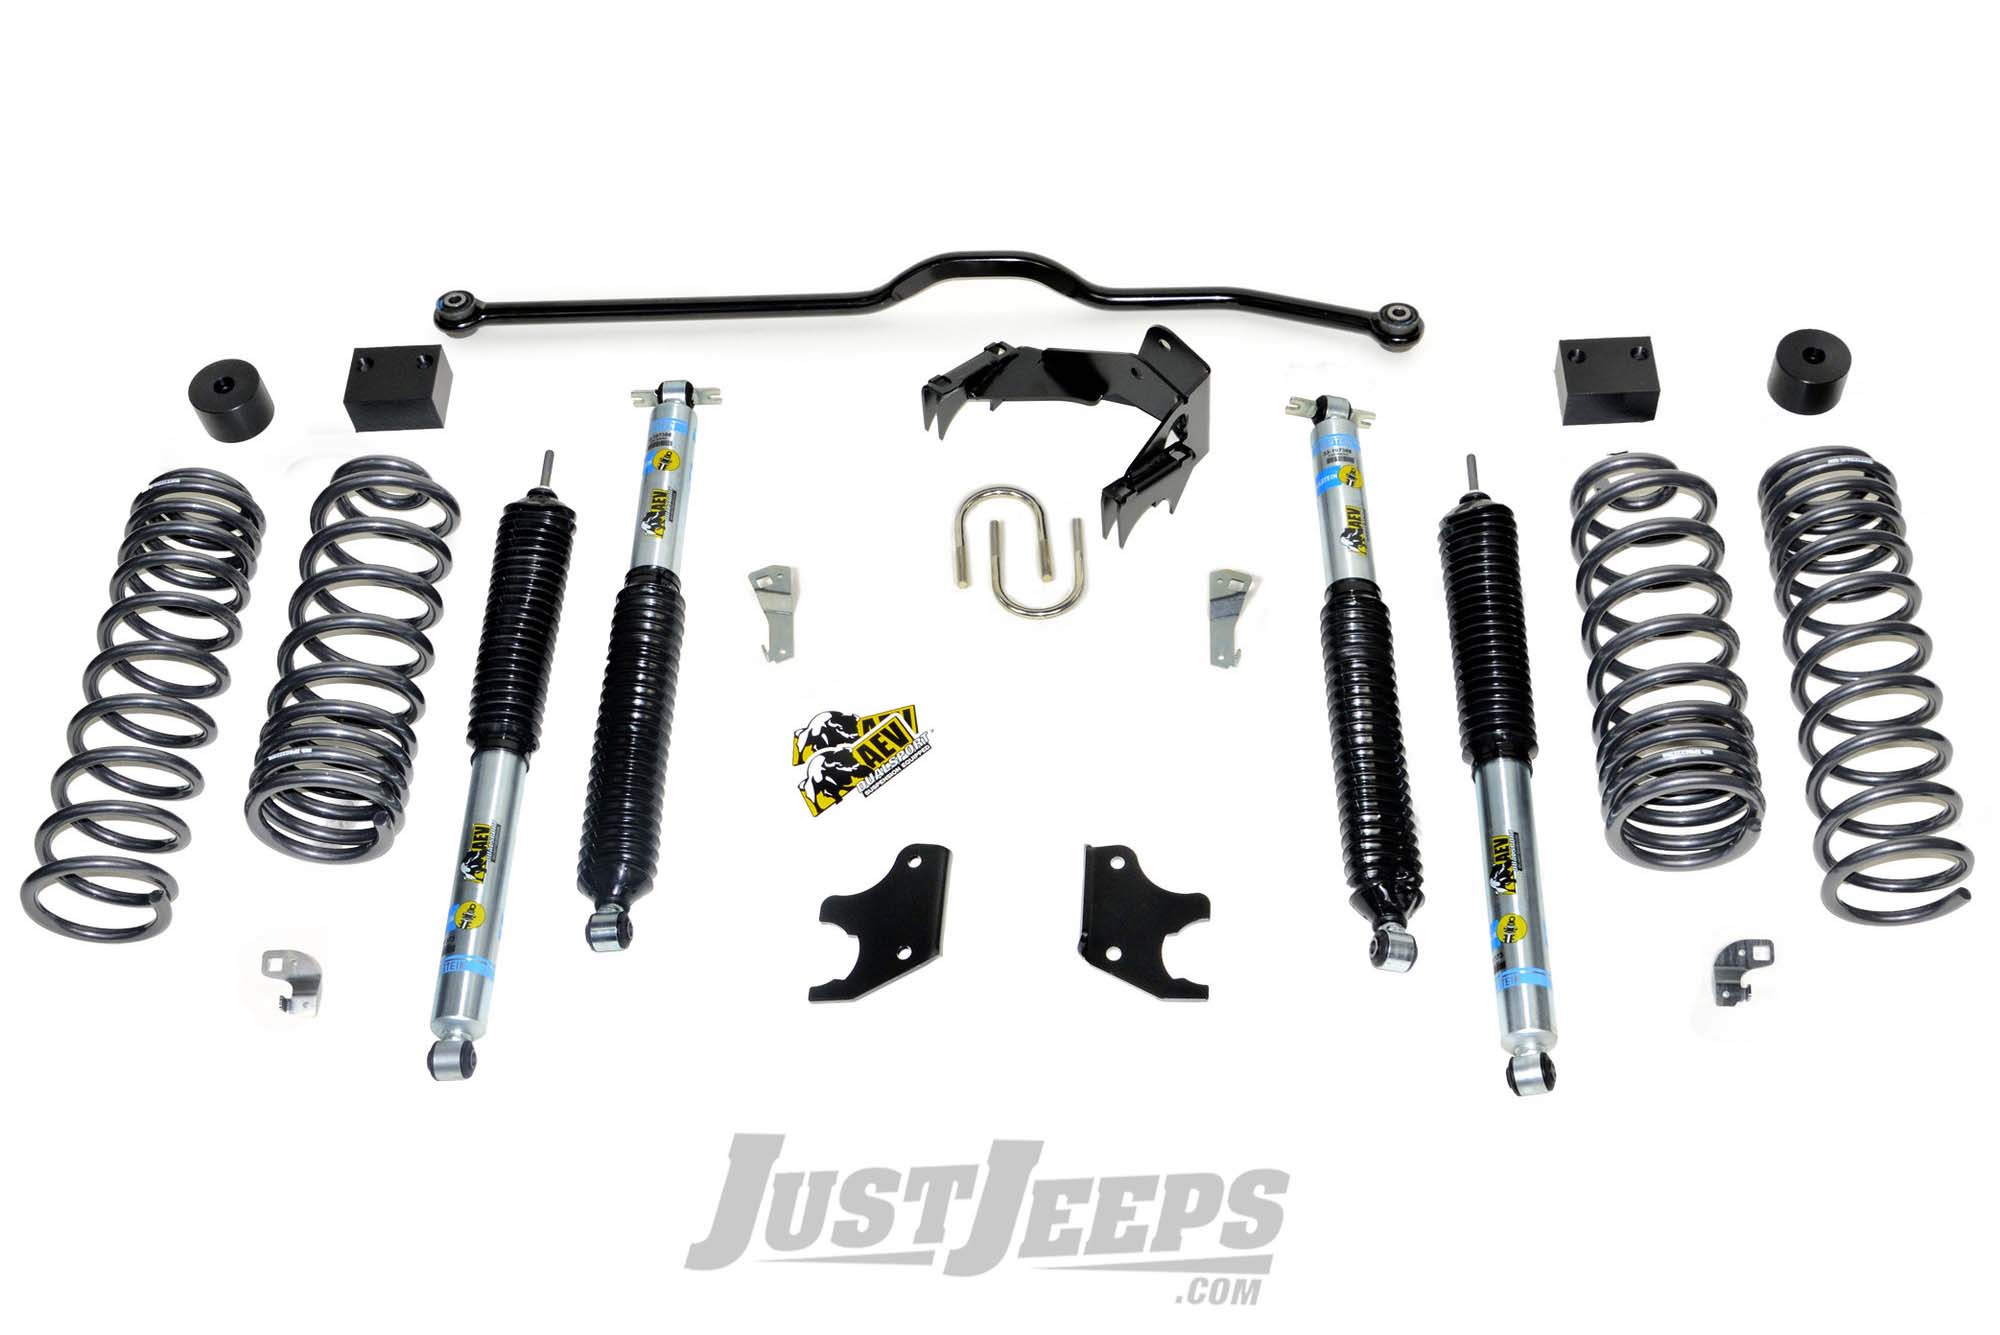 Just Jeeps AEV 2.5